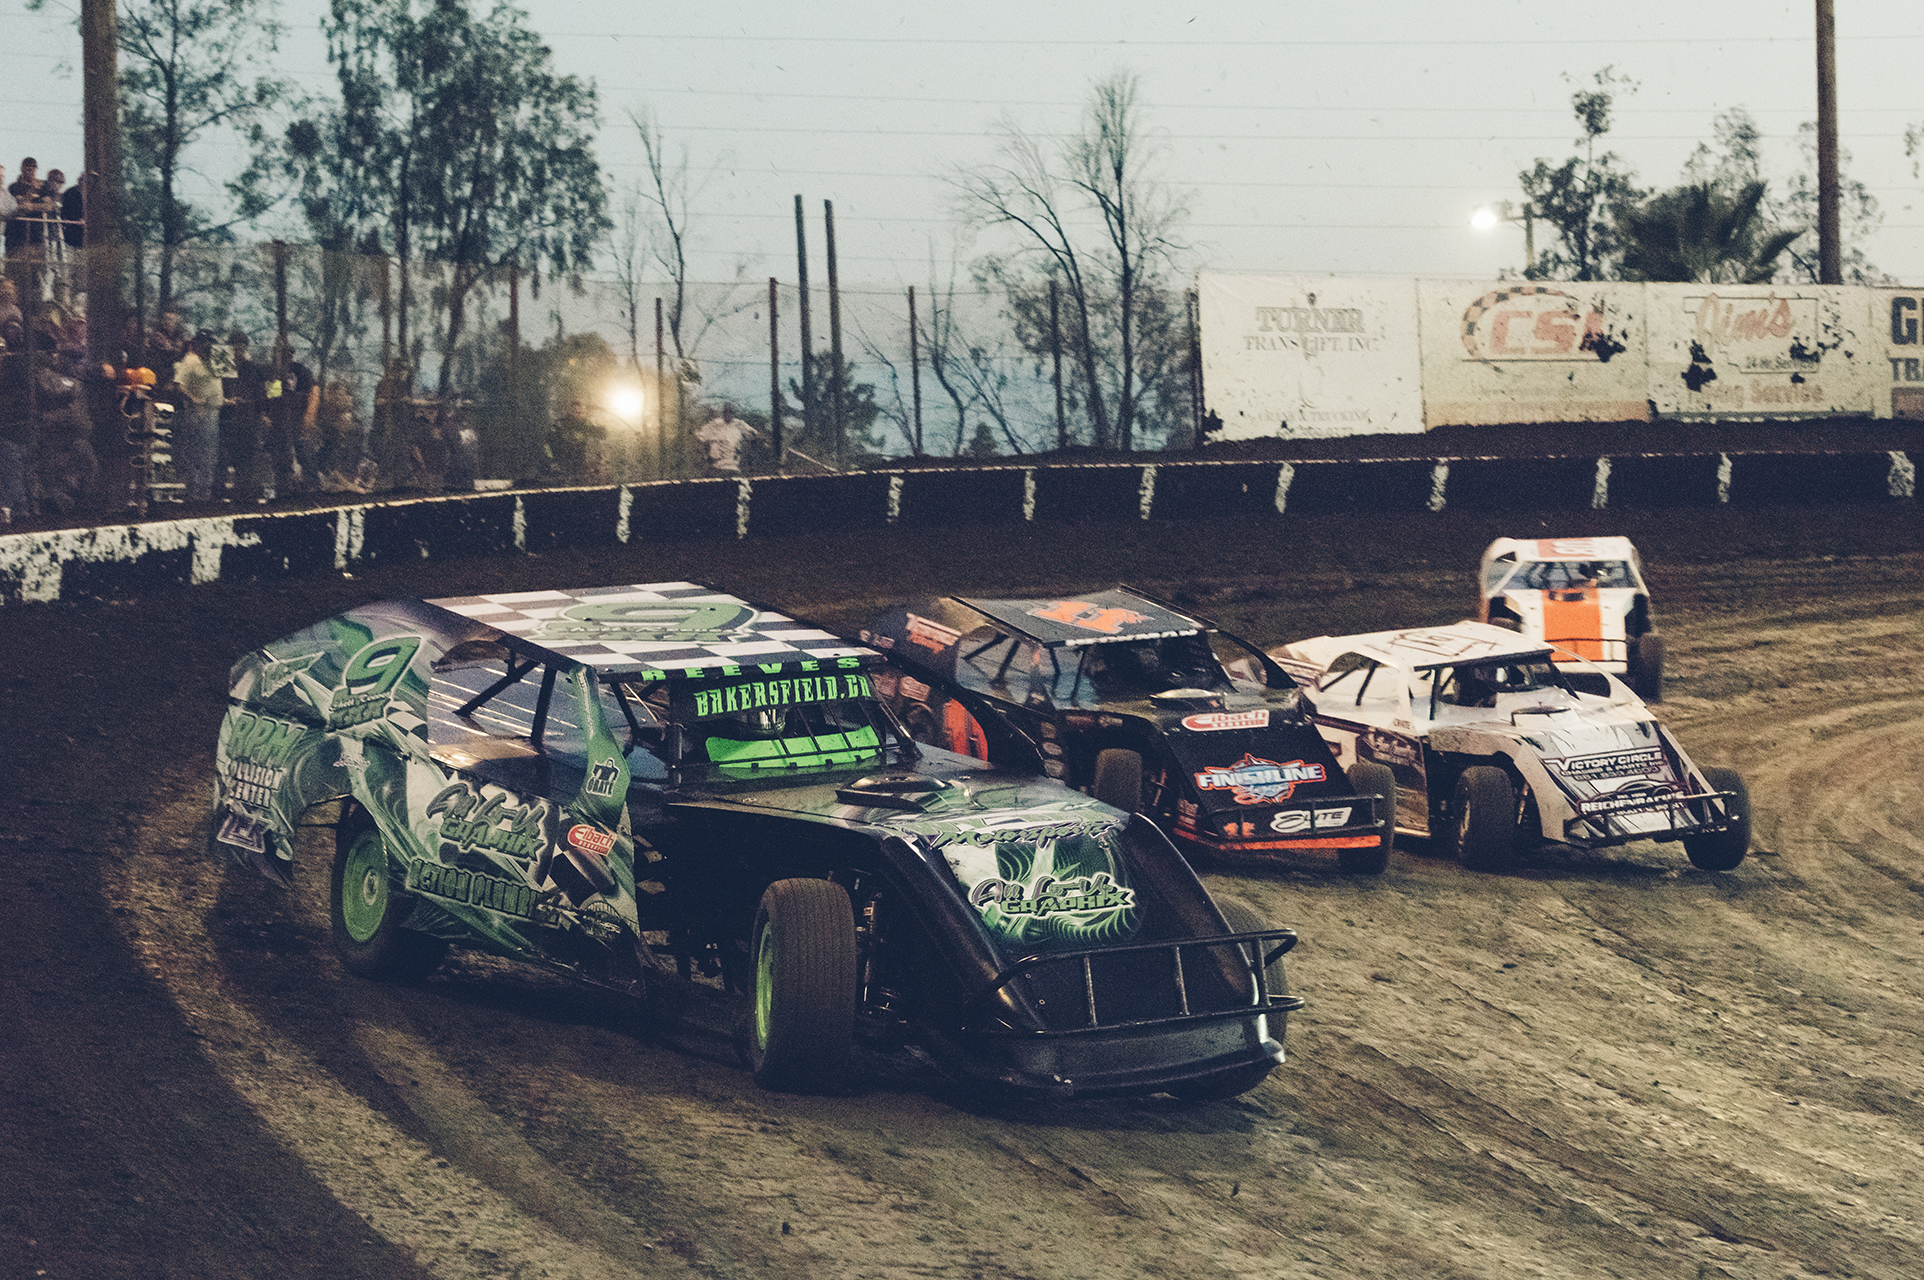 IMCA Modifieds accelerate out of turn two at Bakersfield.